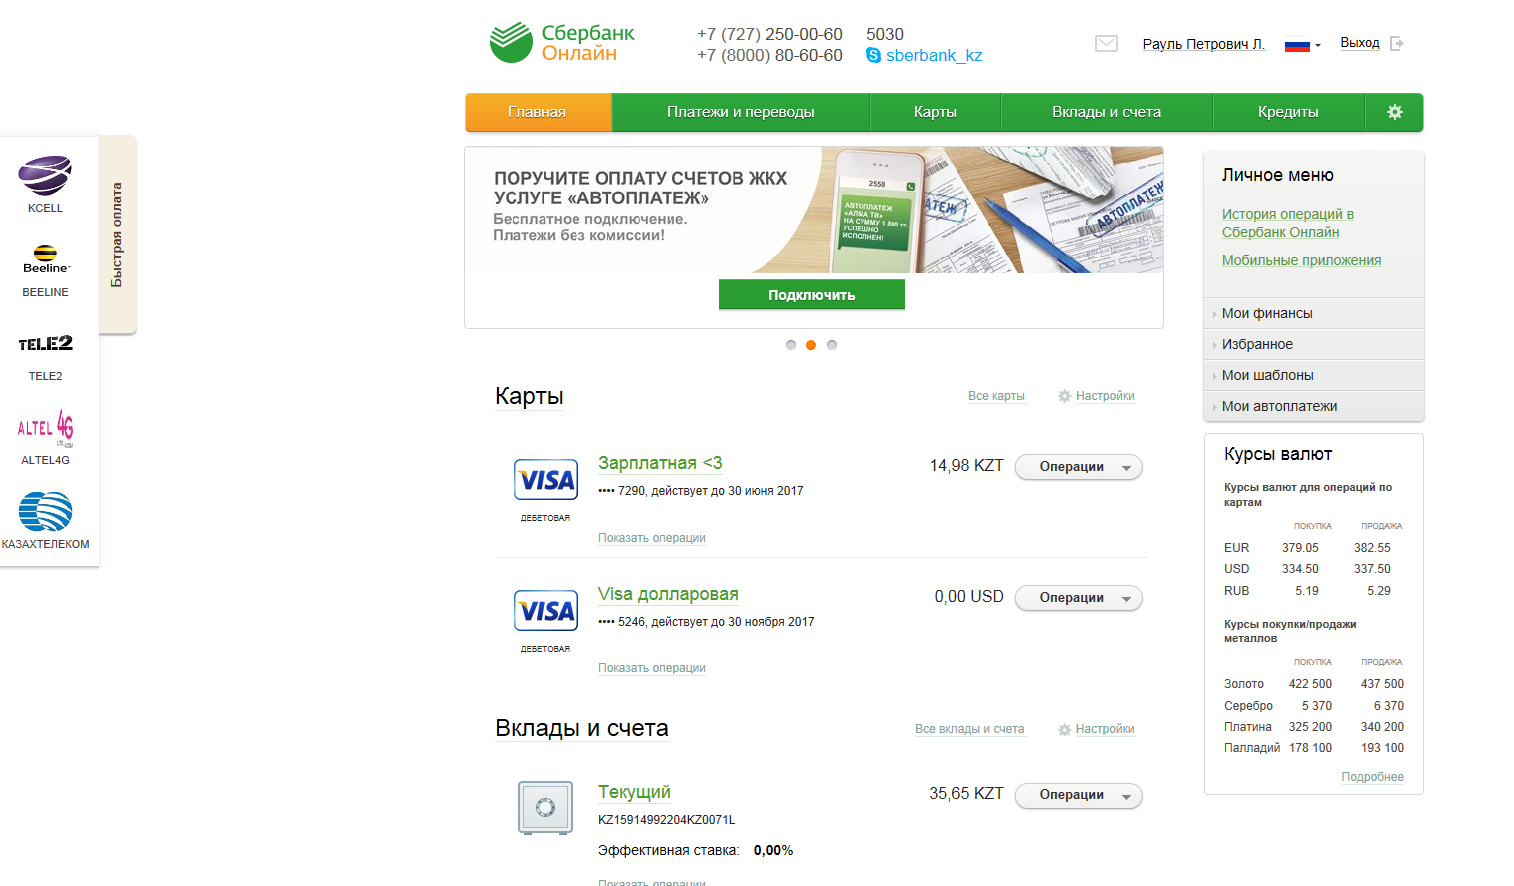 How to activate the Sberbank mobile service 59